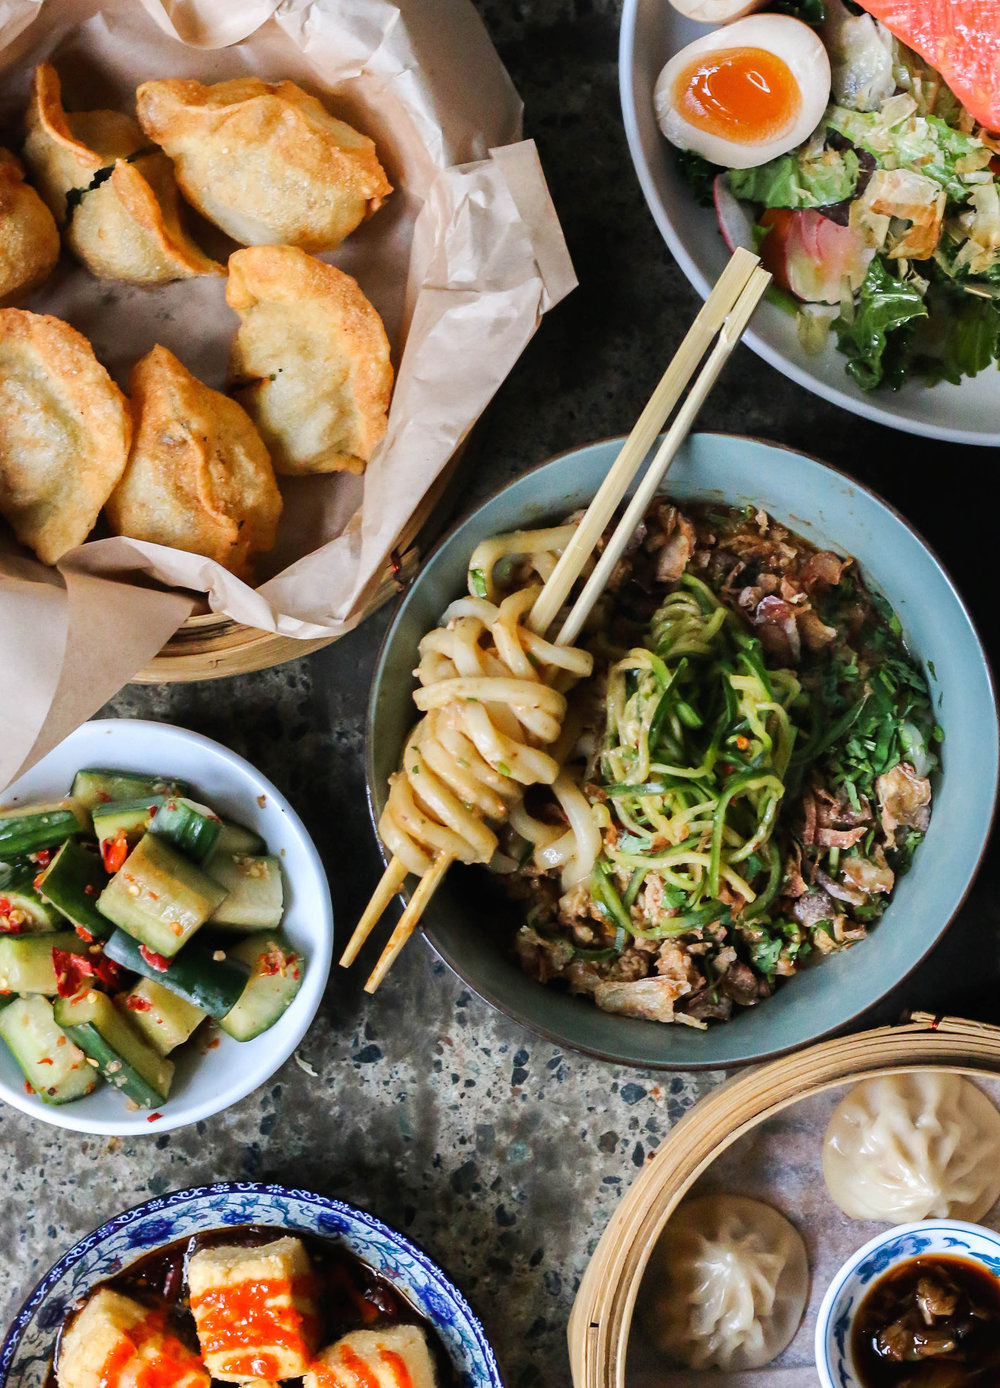 HERITAGE ASIAN EATERY TO OPEN SECOND LOCATIONAT 382 WEST BROADWAY THIS FALL - MAY 24, 2018Heritage Asian Eatery Chef and Co-owner Felix Zhou and partners Natasha Romero and Paul Zhang will bring their modern spin on Far East-inspired fare to a new neighbourhood this fall when they open the doors to a second location of the popular downtown restaurant at 382 West Broadway.Located in the burgeoning Mount Pleasant district, the new addition to the Heritage family will occupy a 2,300-sq.-ft. licensed space with seating for 40 guests. The second counter-service outpost will offer the same casual, communal atmosphere for sit-down and take-out lunch and dinner that has made the original location at 1108 West Pender St. a must-try dining destination since it opened in 2016.